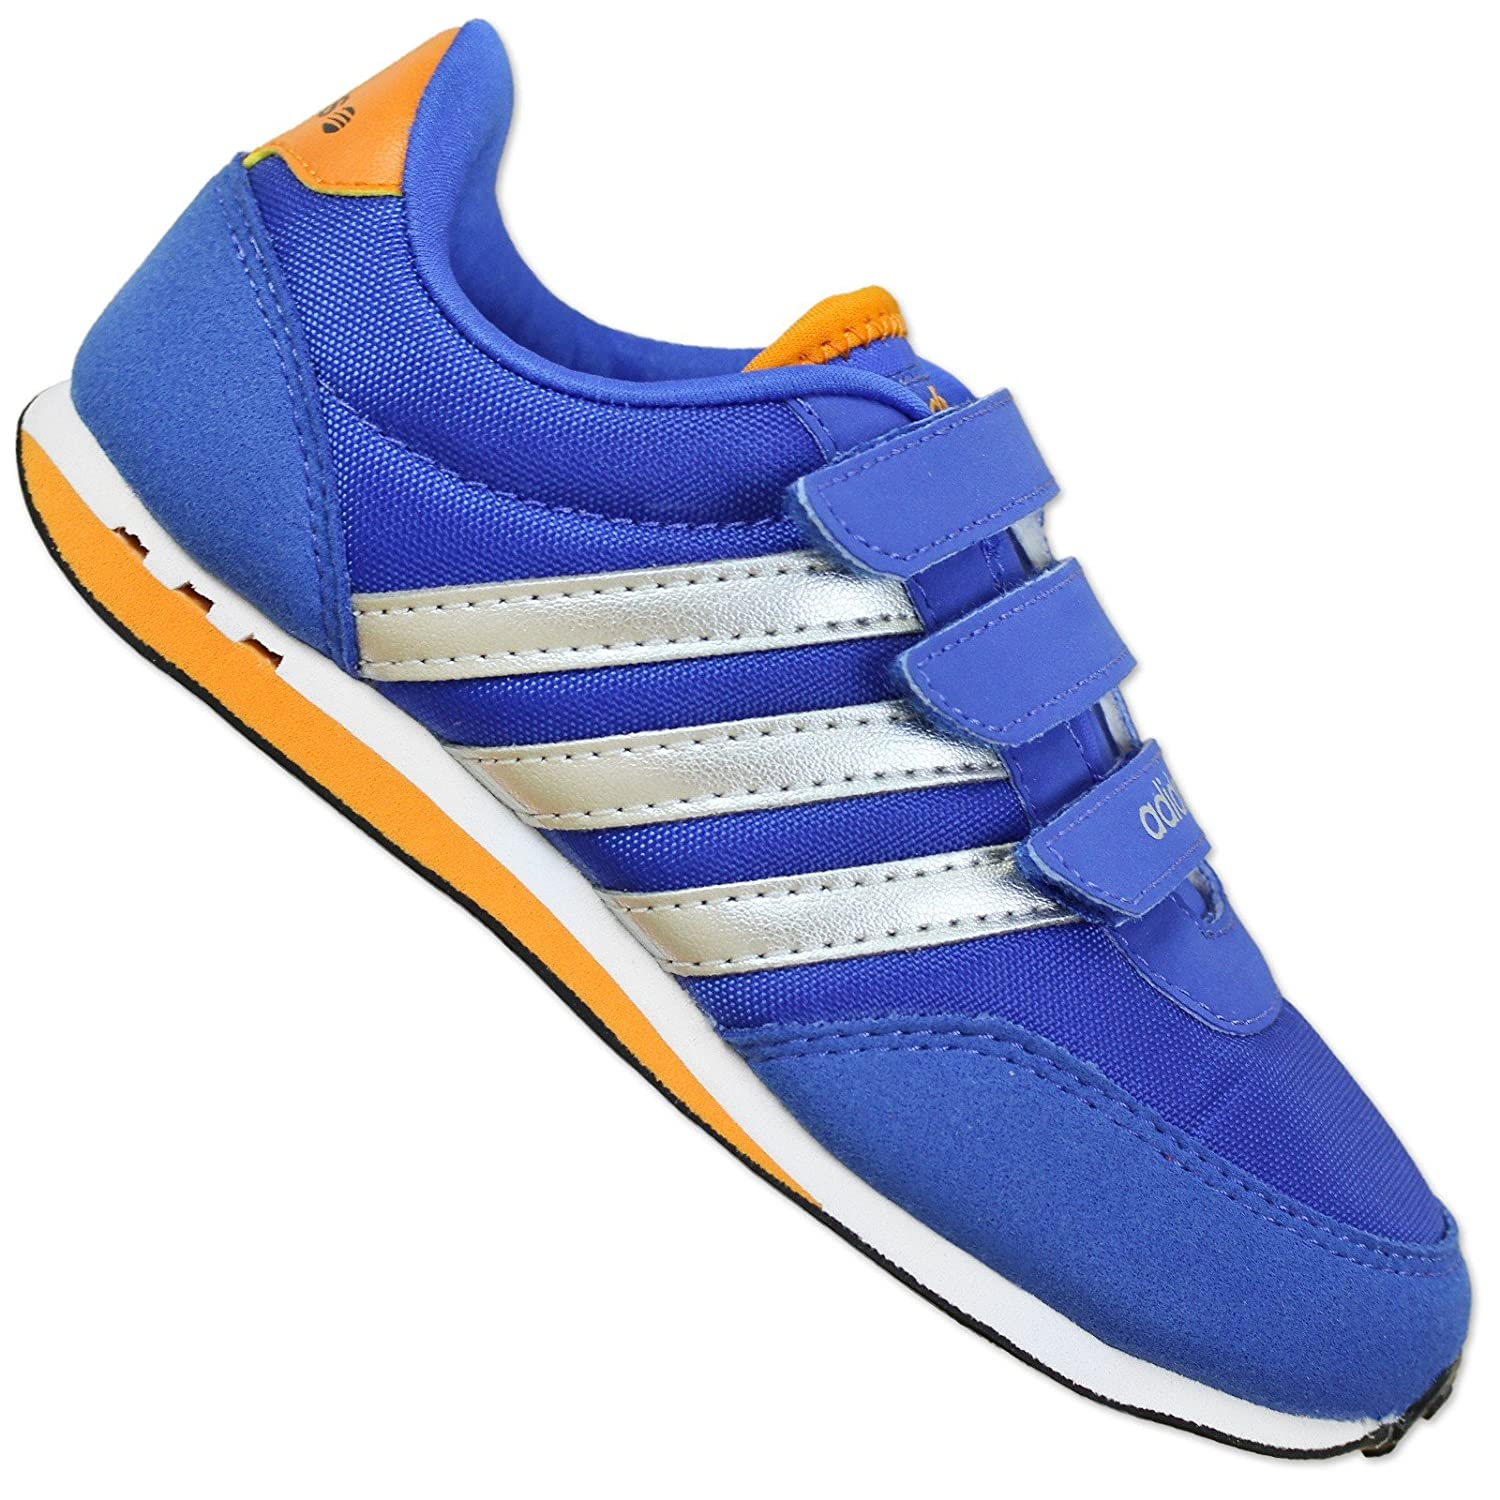 adidas NEO Label V Racer CMF K Childrens Shoes Boys' Shoes